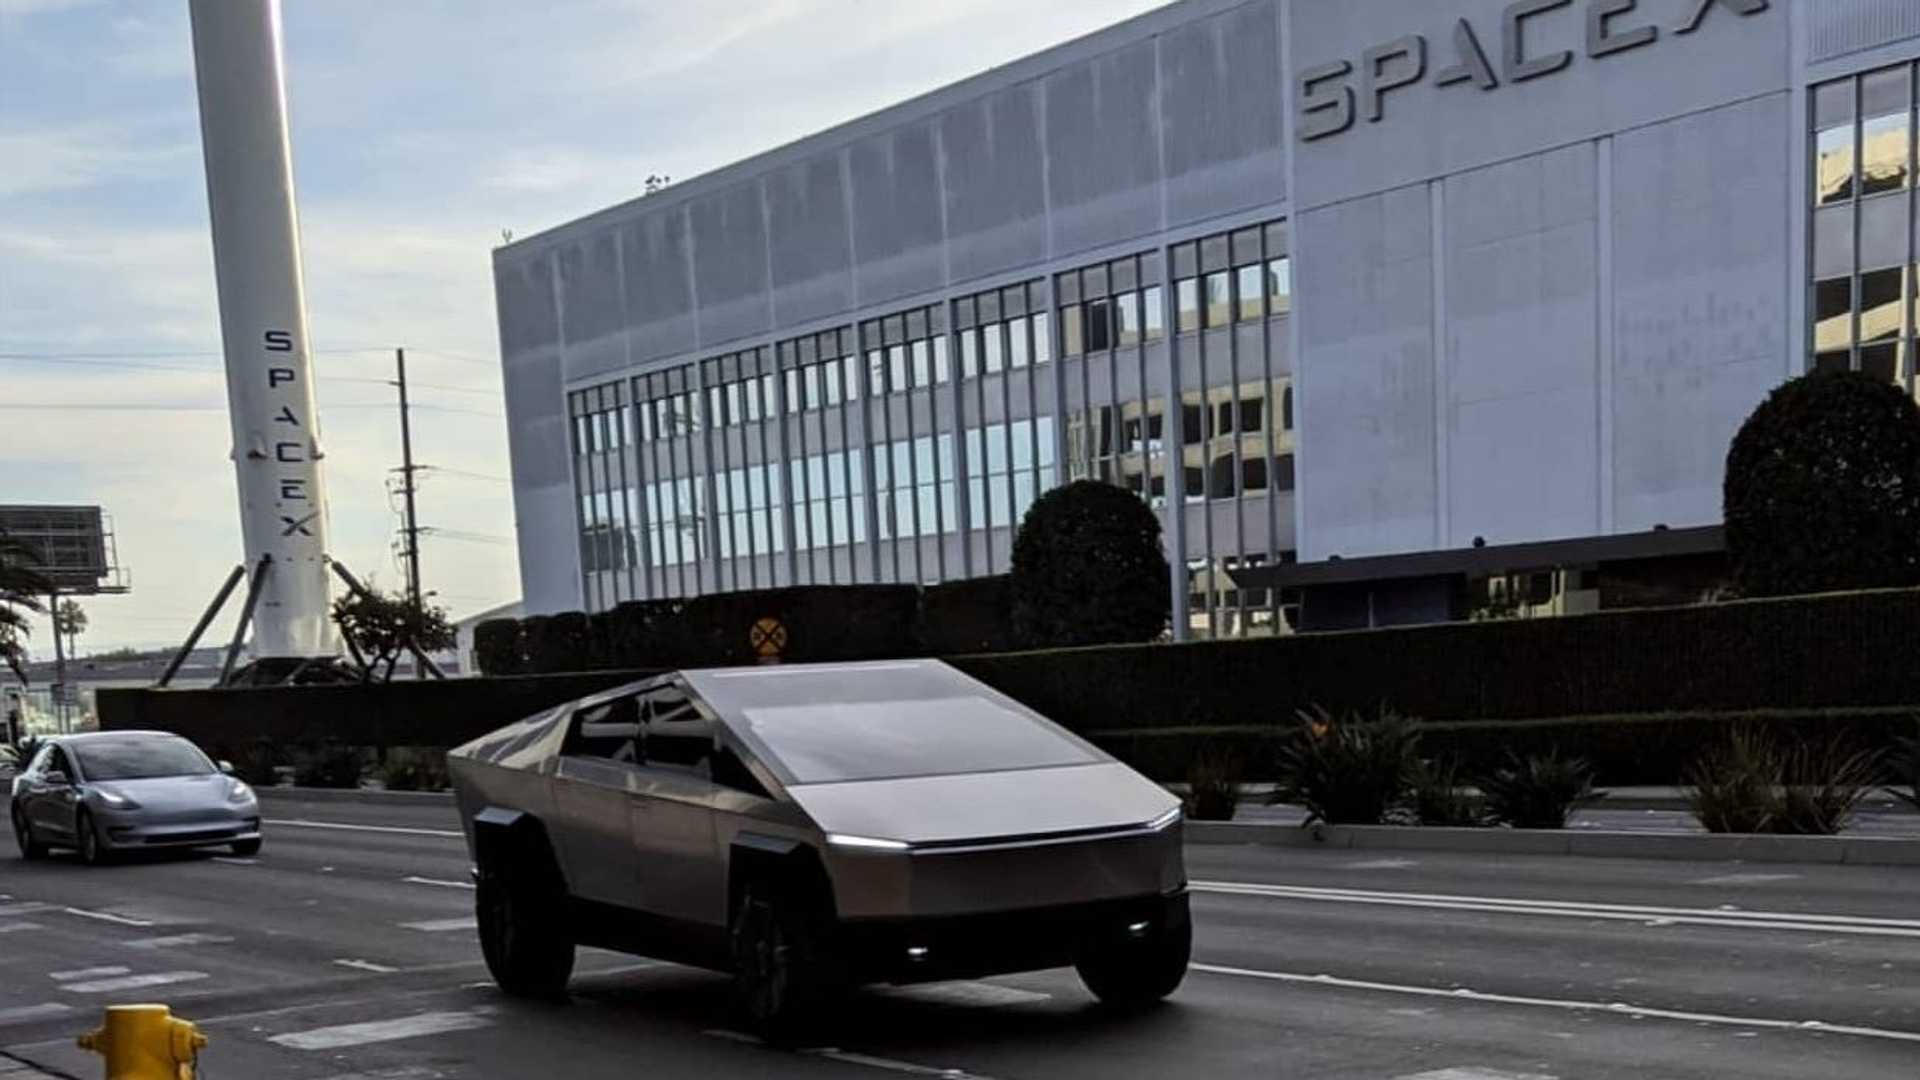 Jay Leno, Elon Musk spotted in Tesla Cybertruck near SpaceX HQ